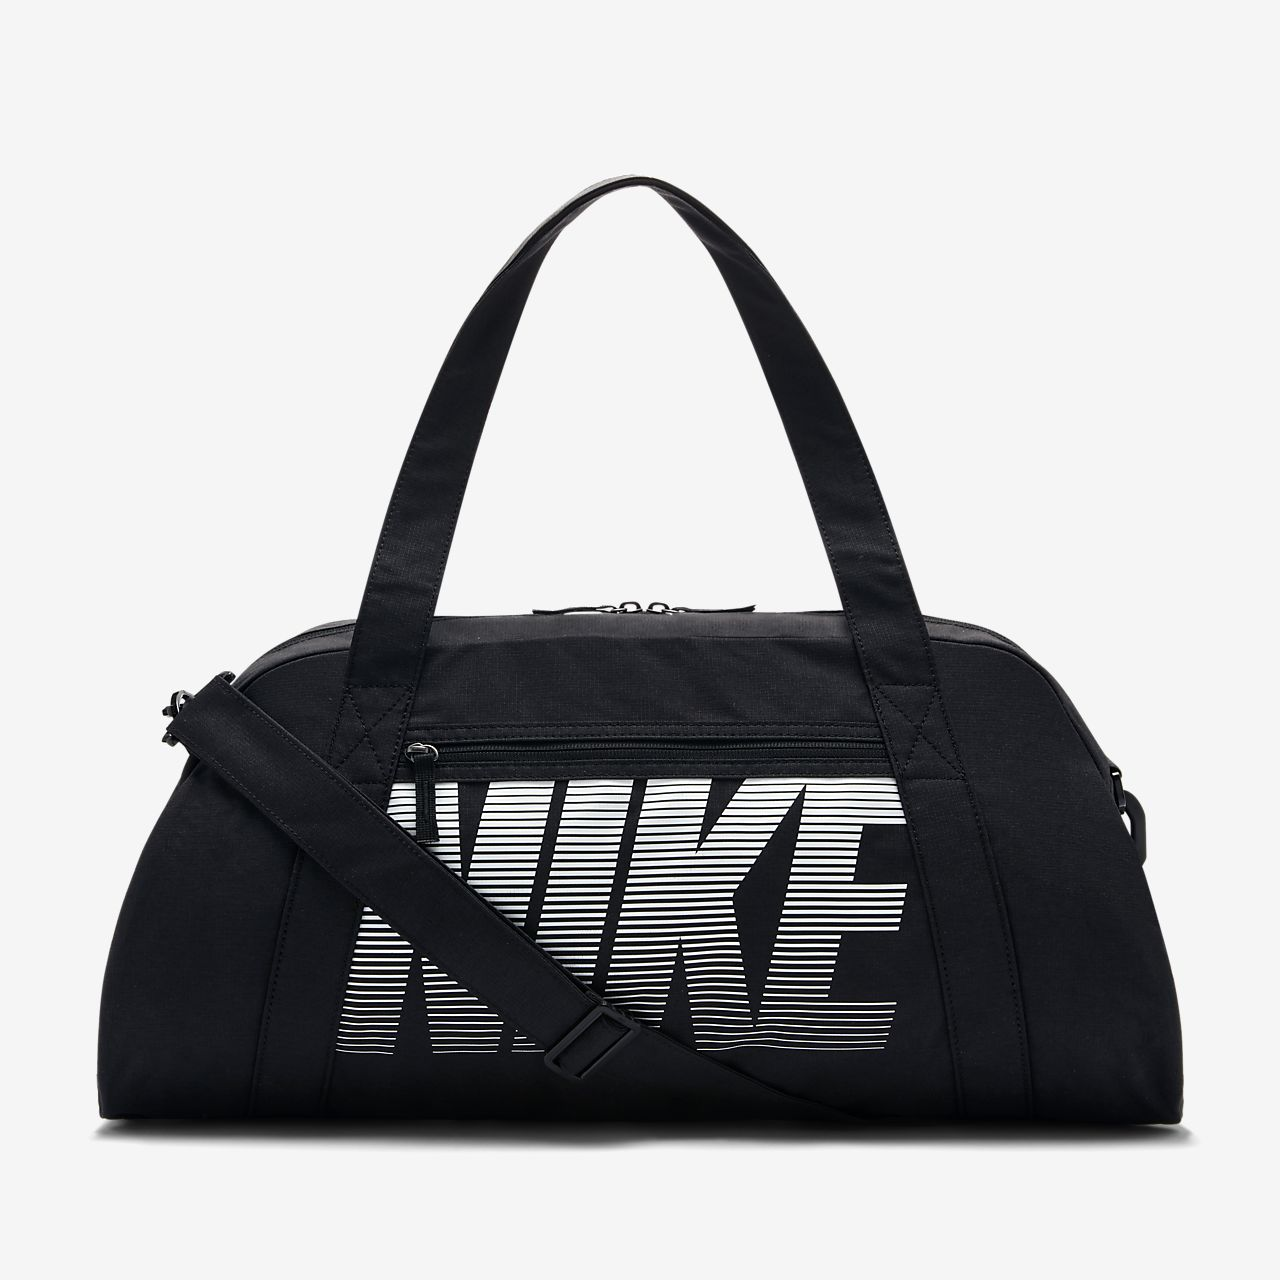 8657c9c9ebb8 Nike Gym Club Training Duffel Bag. Nike.com LU